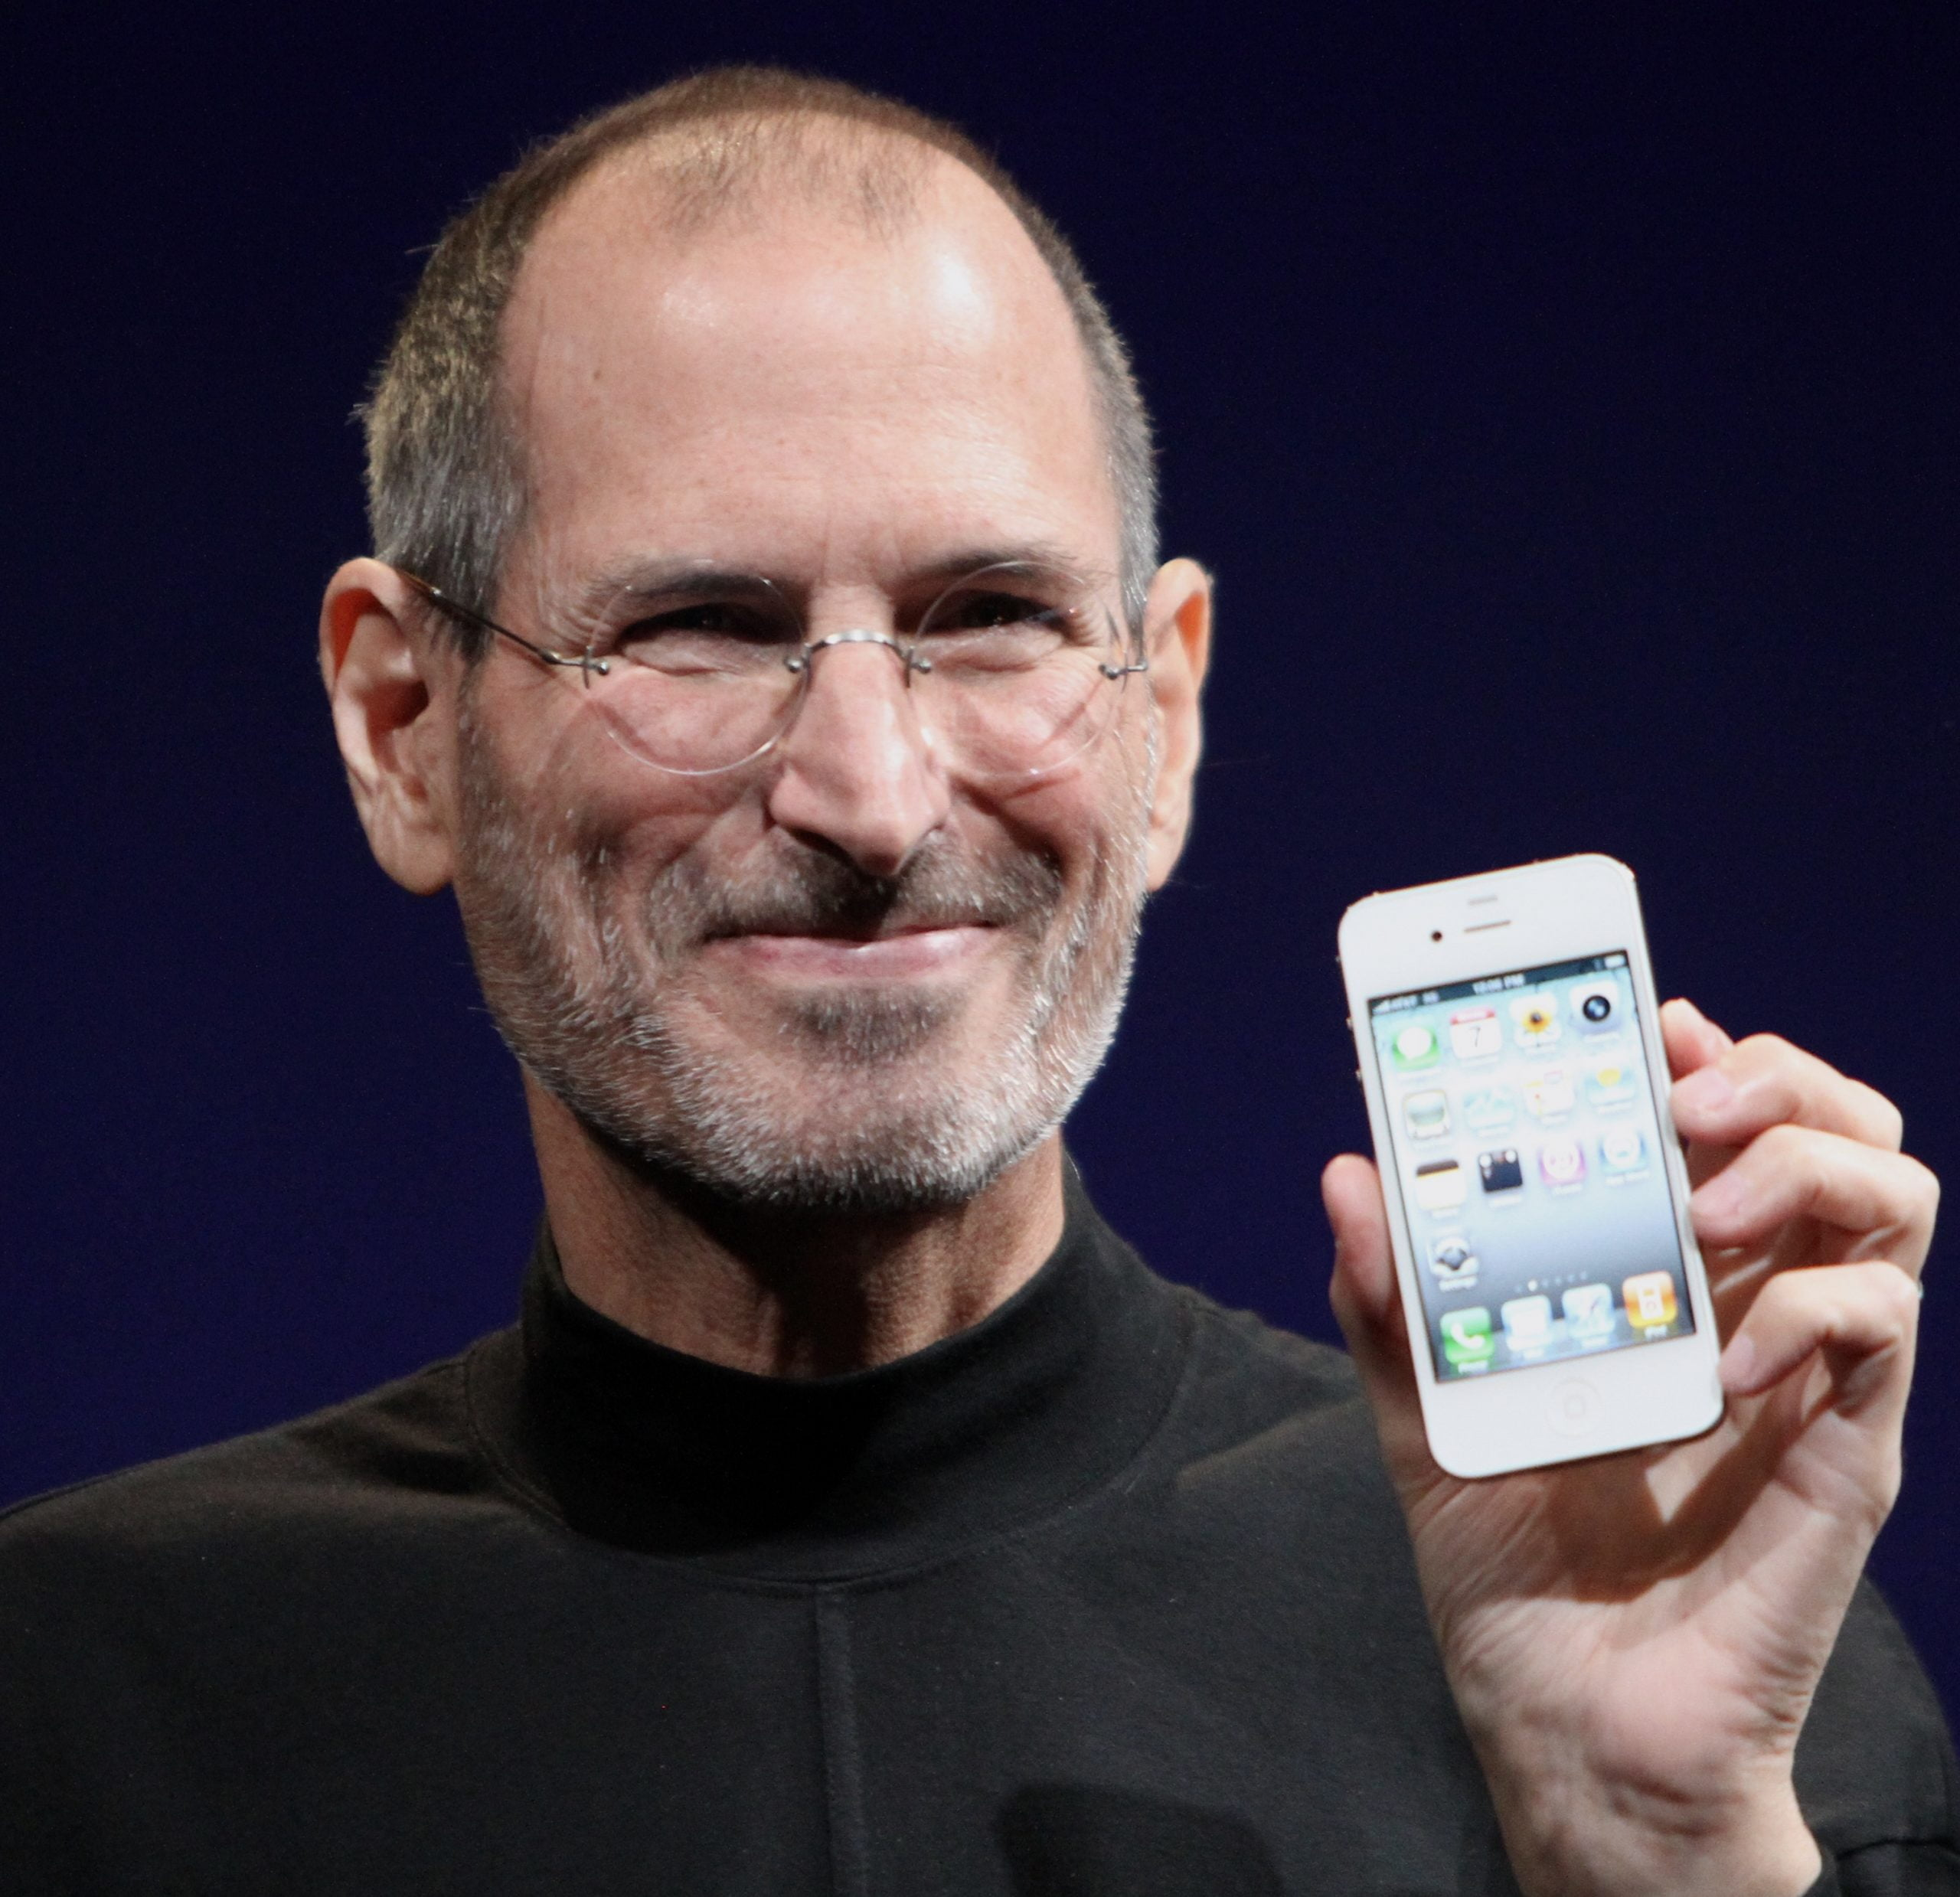 Johny Srouji, senior vice president of hardware at Apple, candidate to be the next CEO of Intel